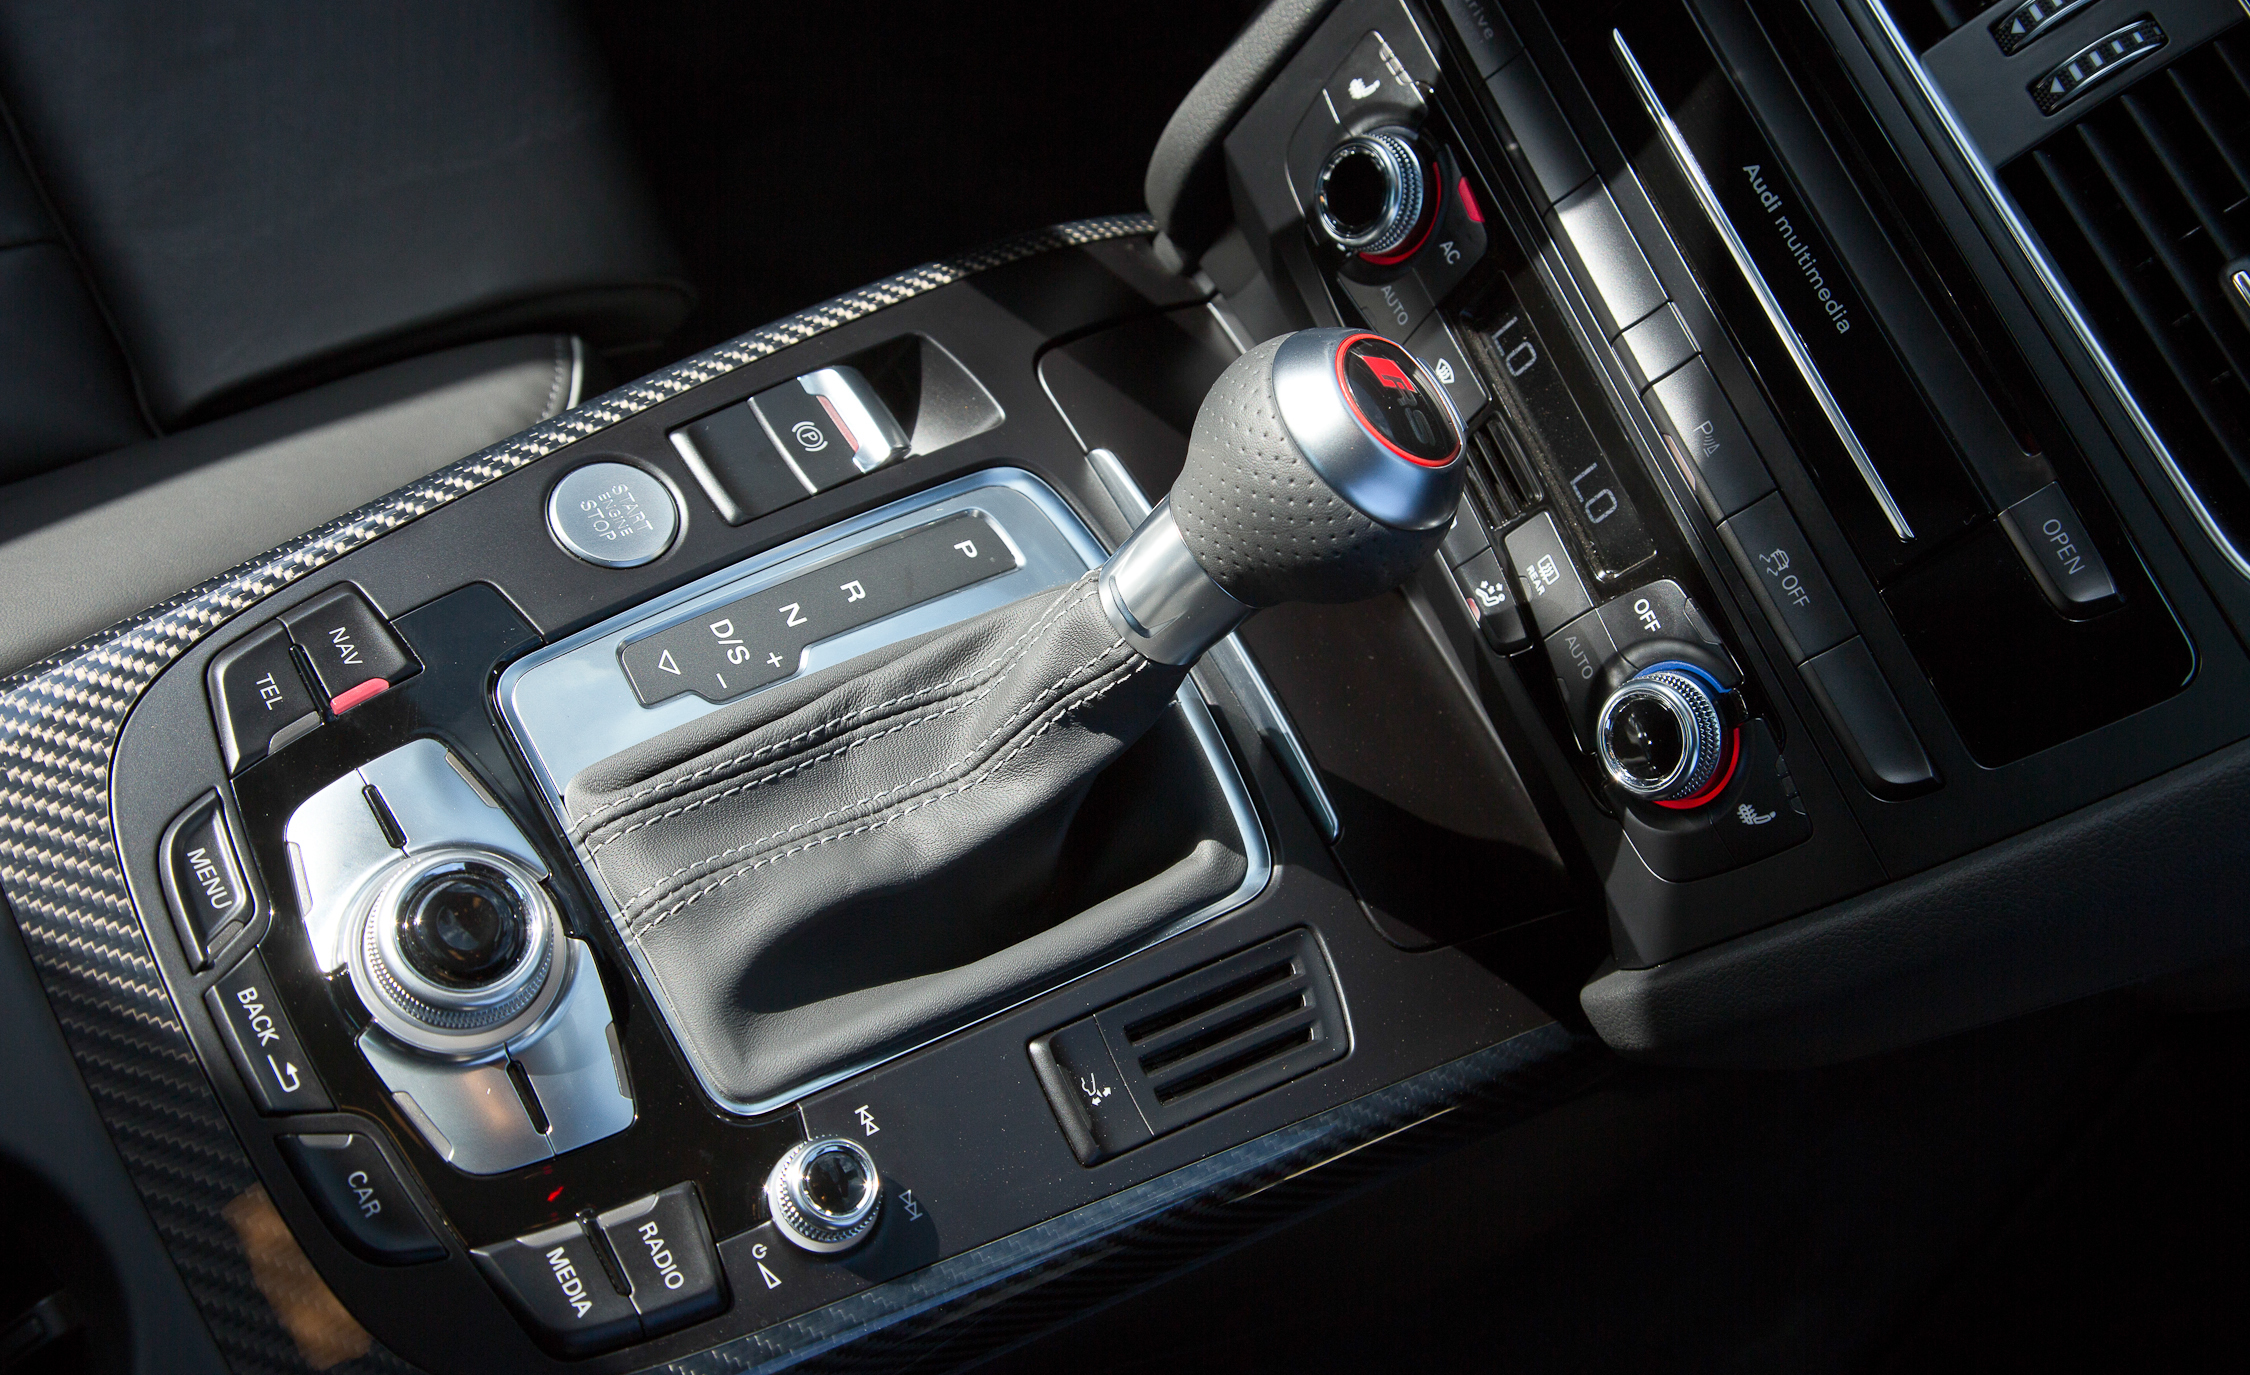 2013 Audi RS 5 Interior View Gear Shift Knob (Photo 26 of 41)